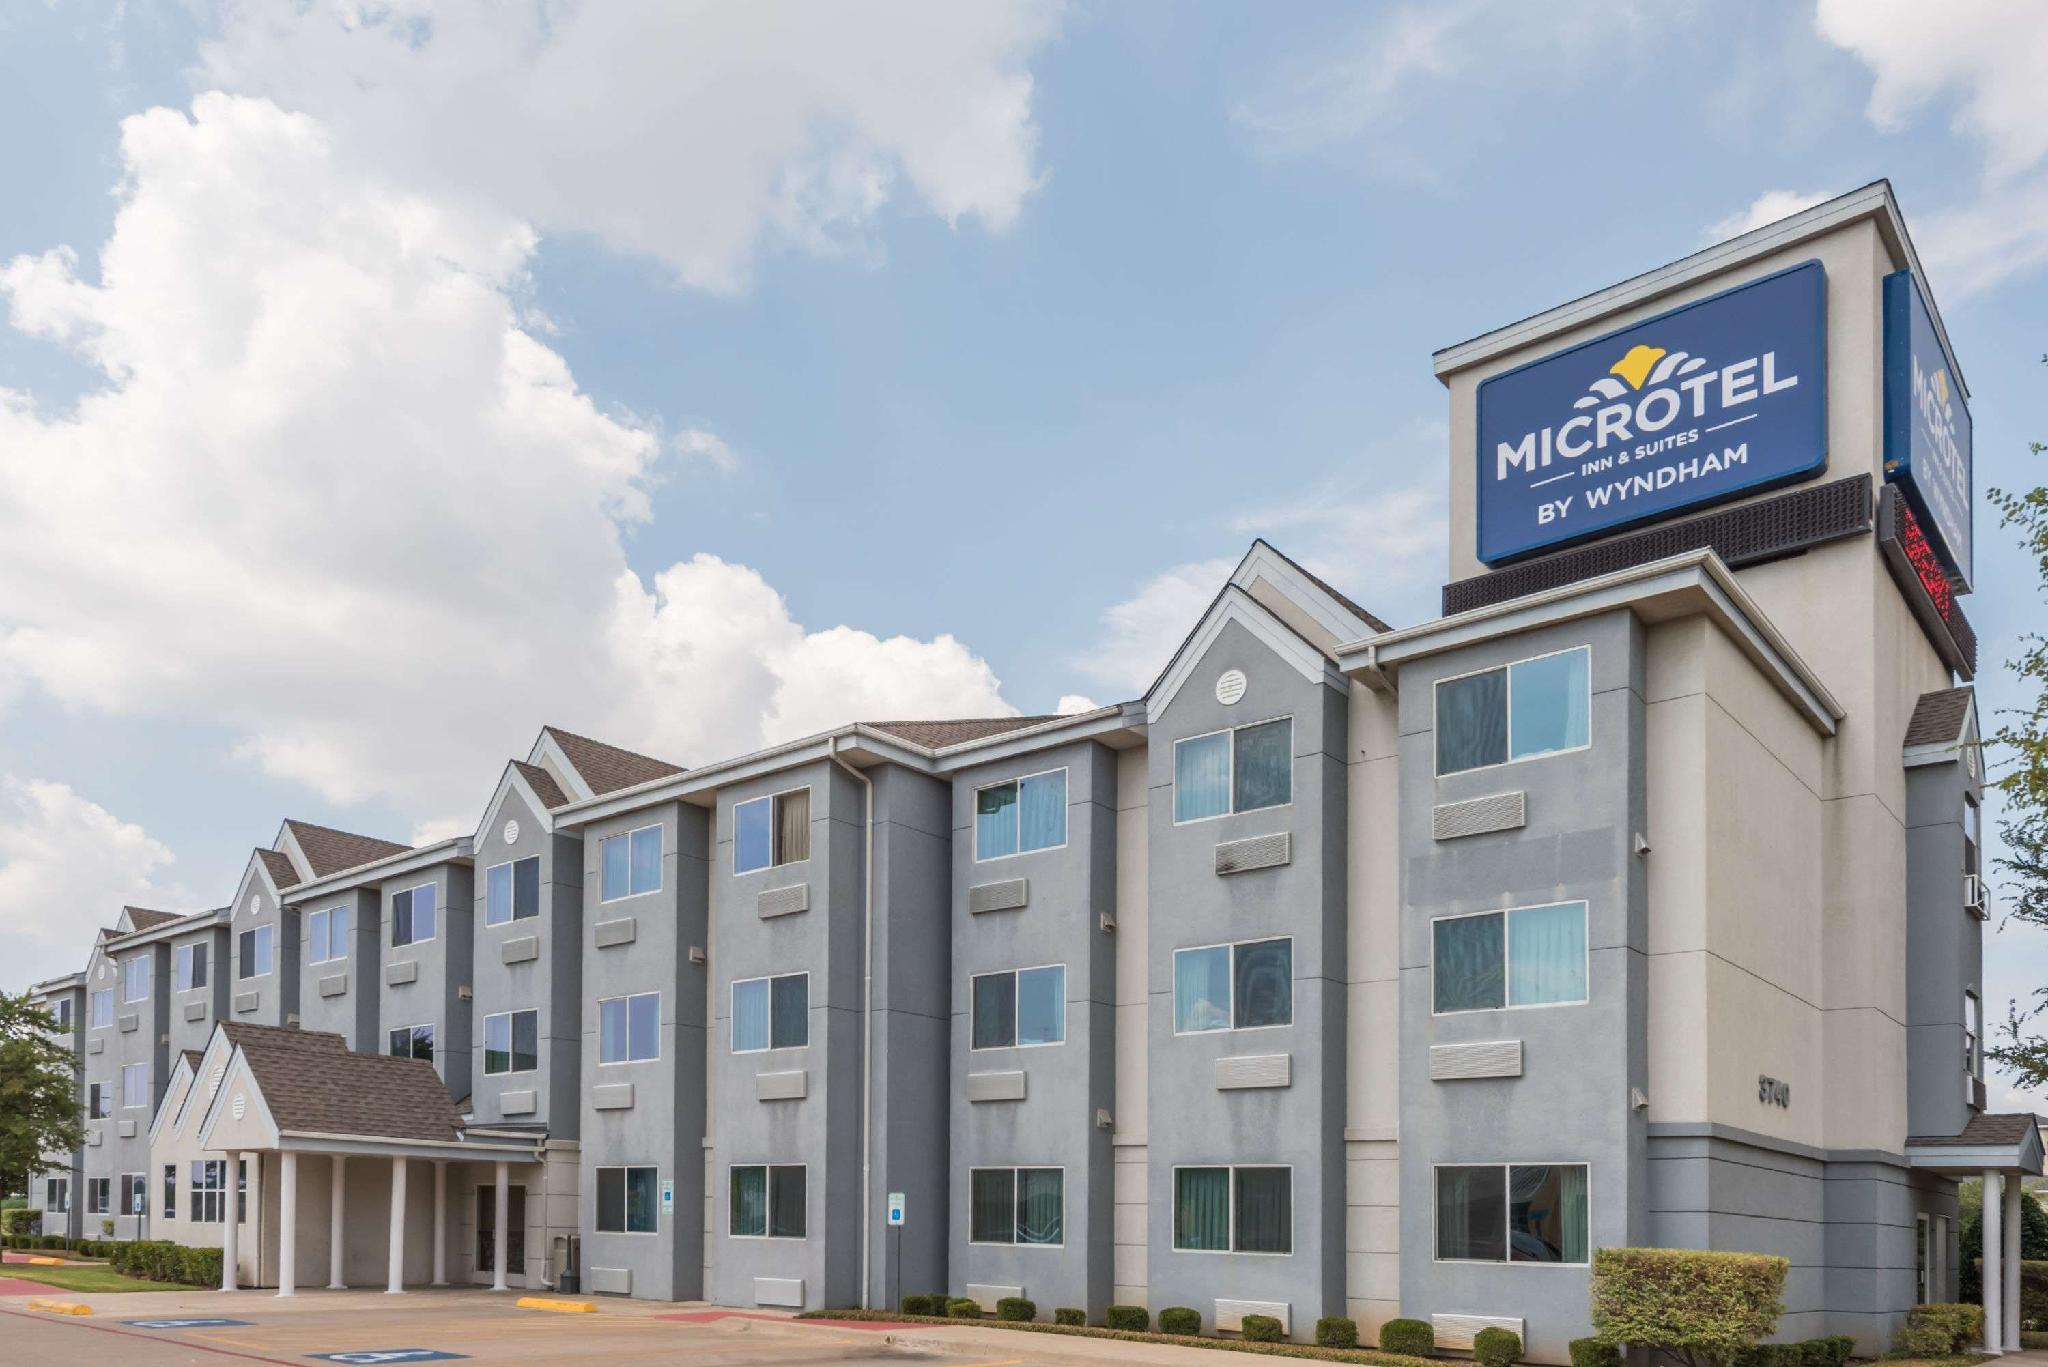 Microtel Inn And Suites By Wyndham Ft. Worth North At Fossil